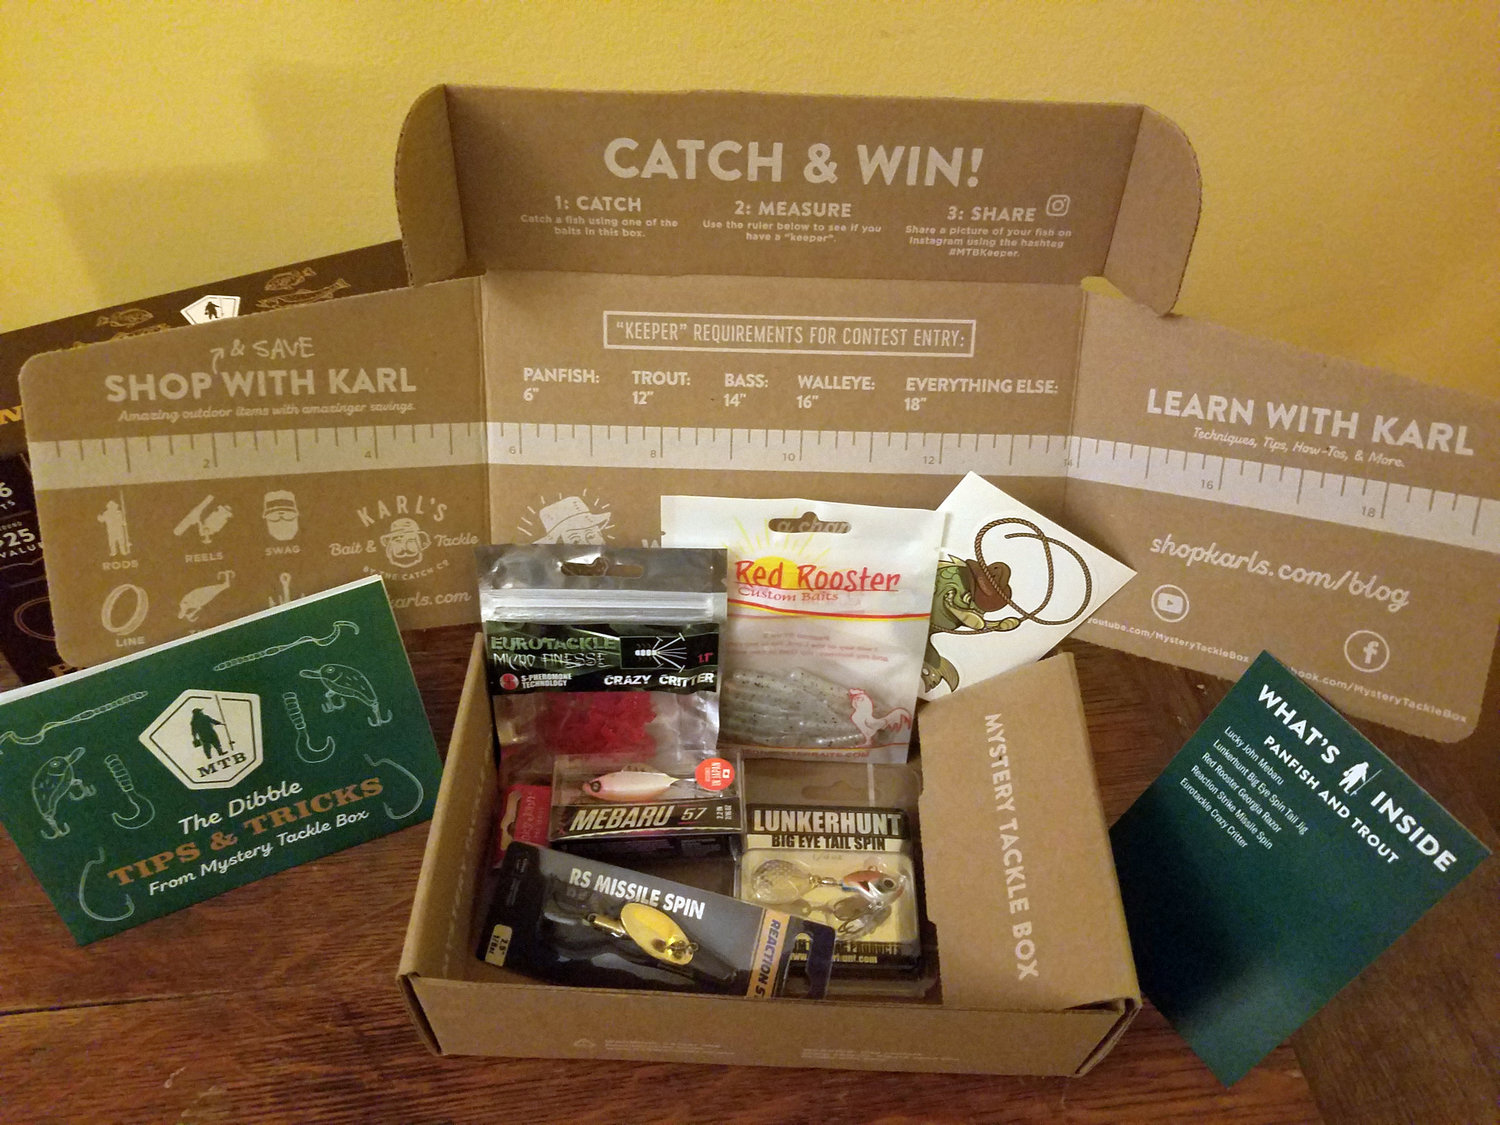 You can quickly collect lots of interesting tackle from a subscription box service.